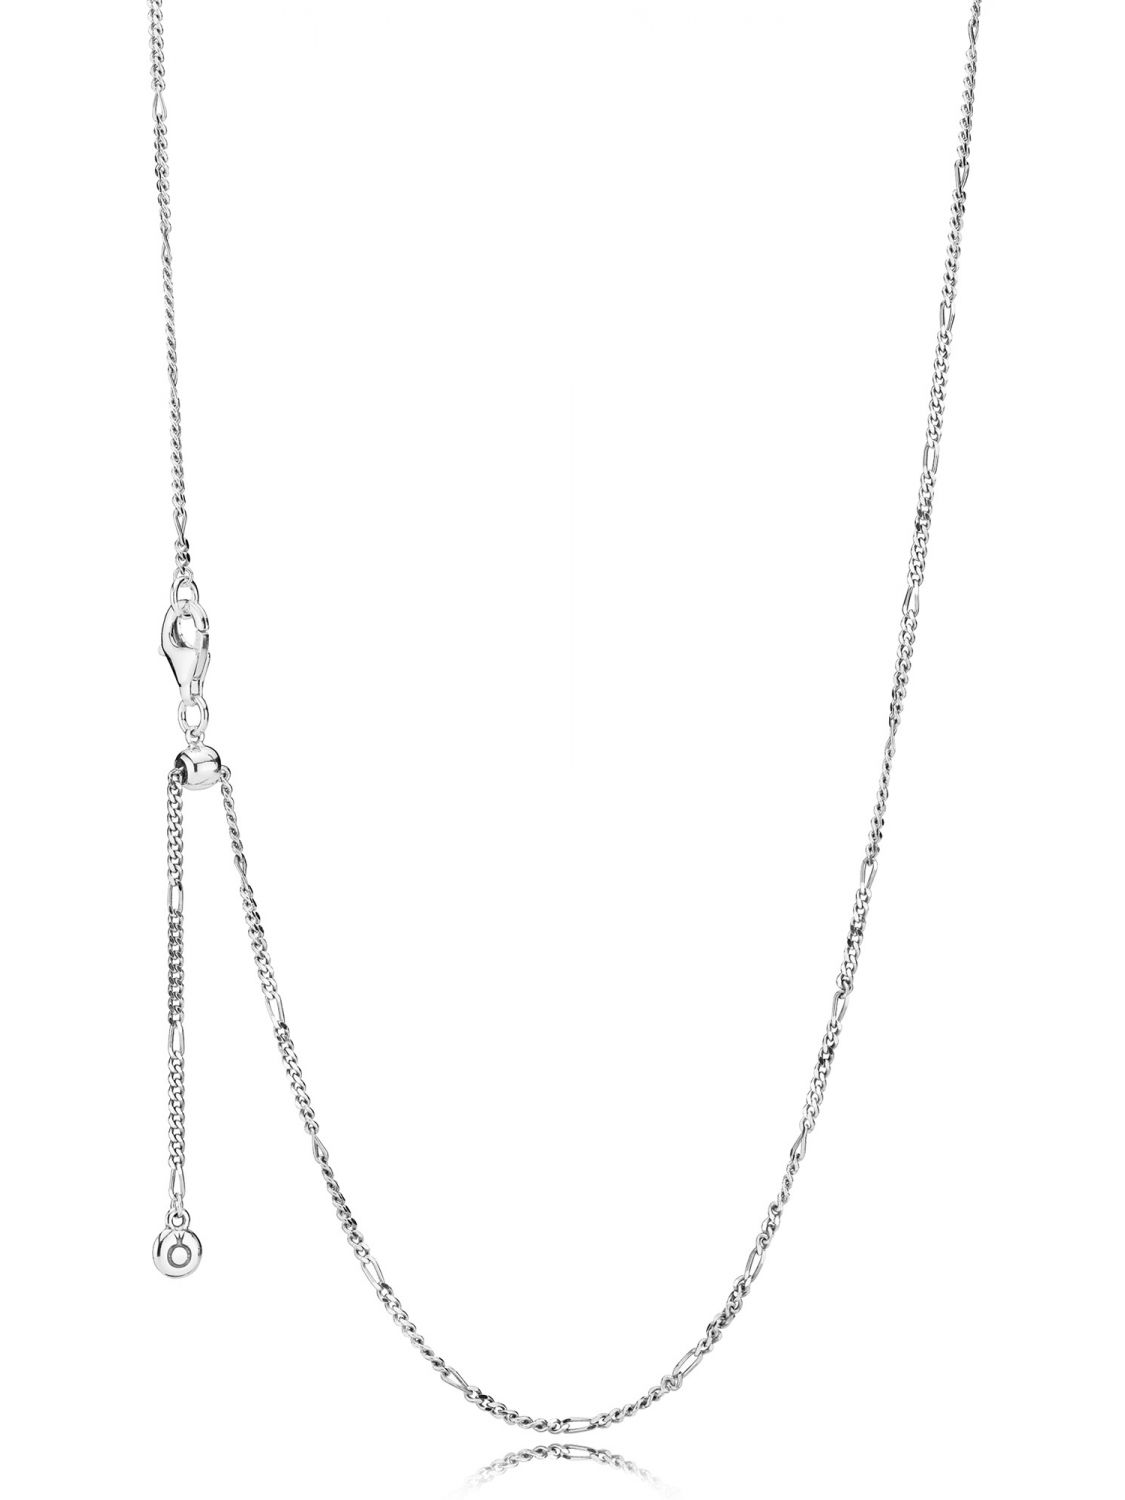 642a25dad ... Pandora 397723-70 Chain Only Image 2 · Necklace length ...